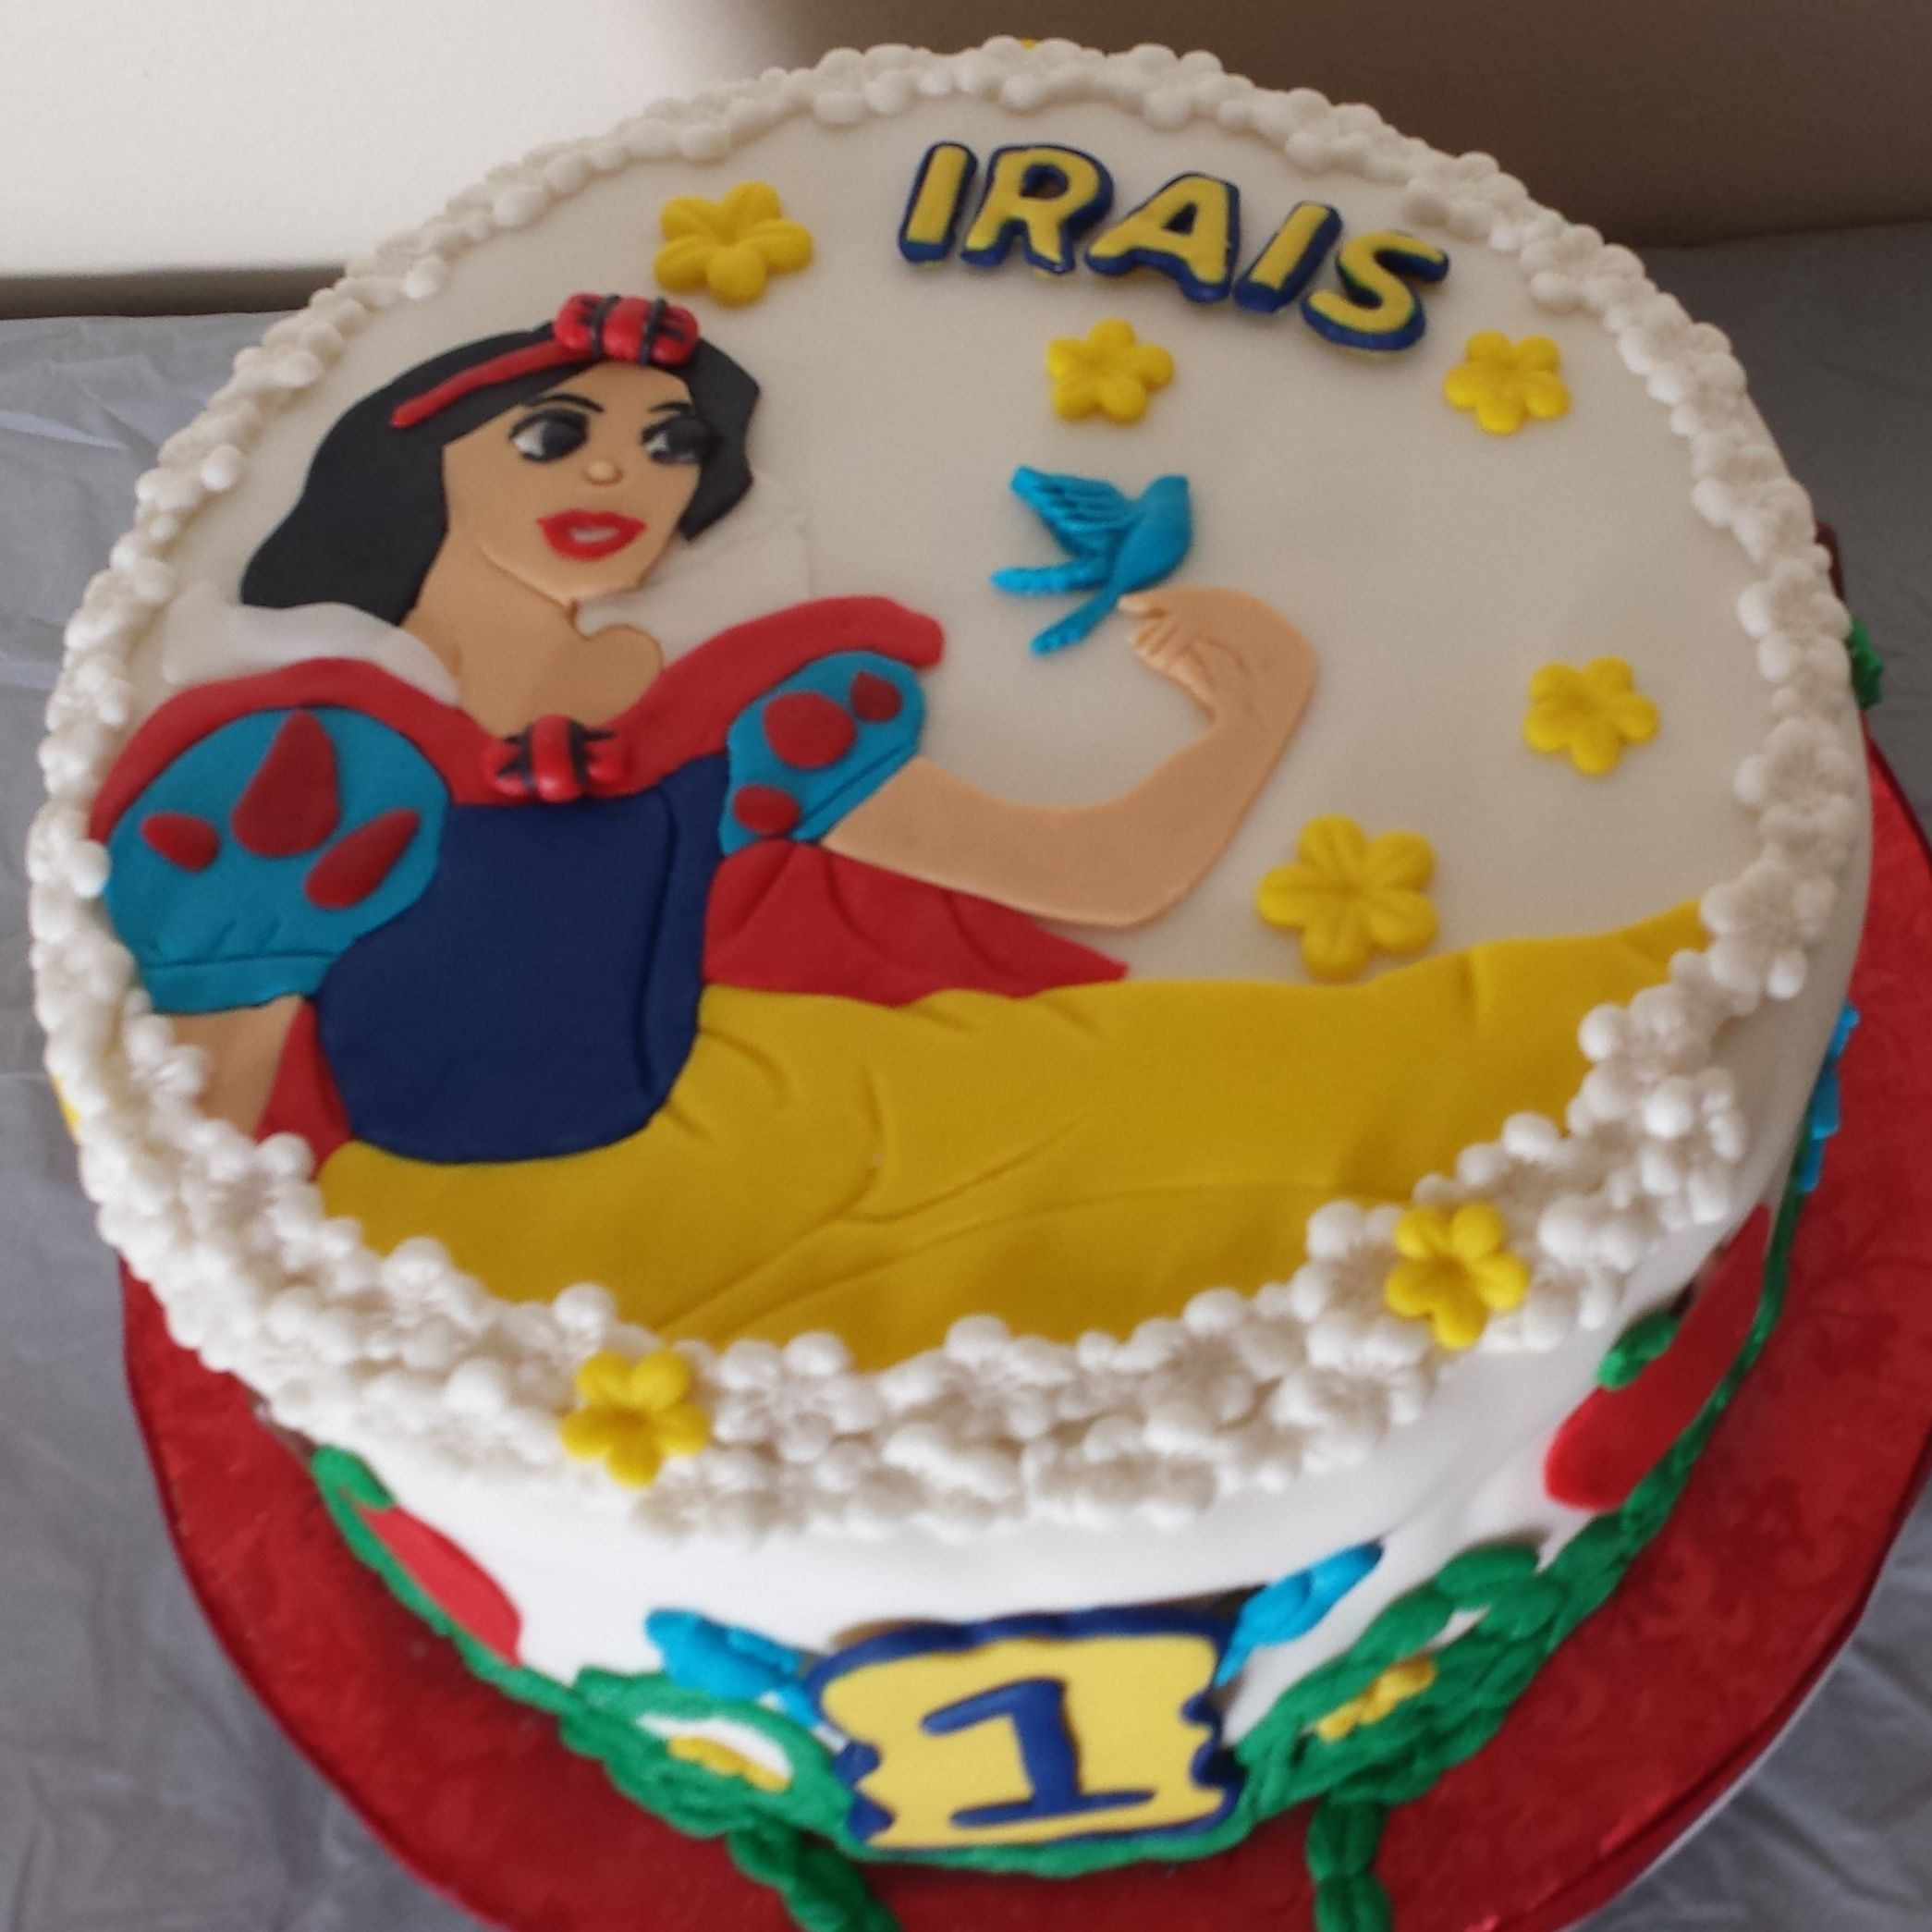 Snow White Birthday Cake Los Angeles CA